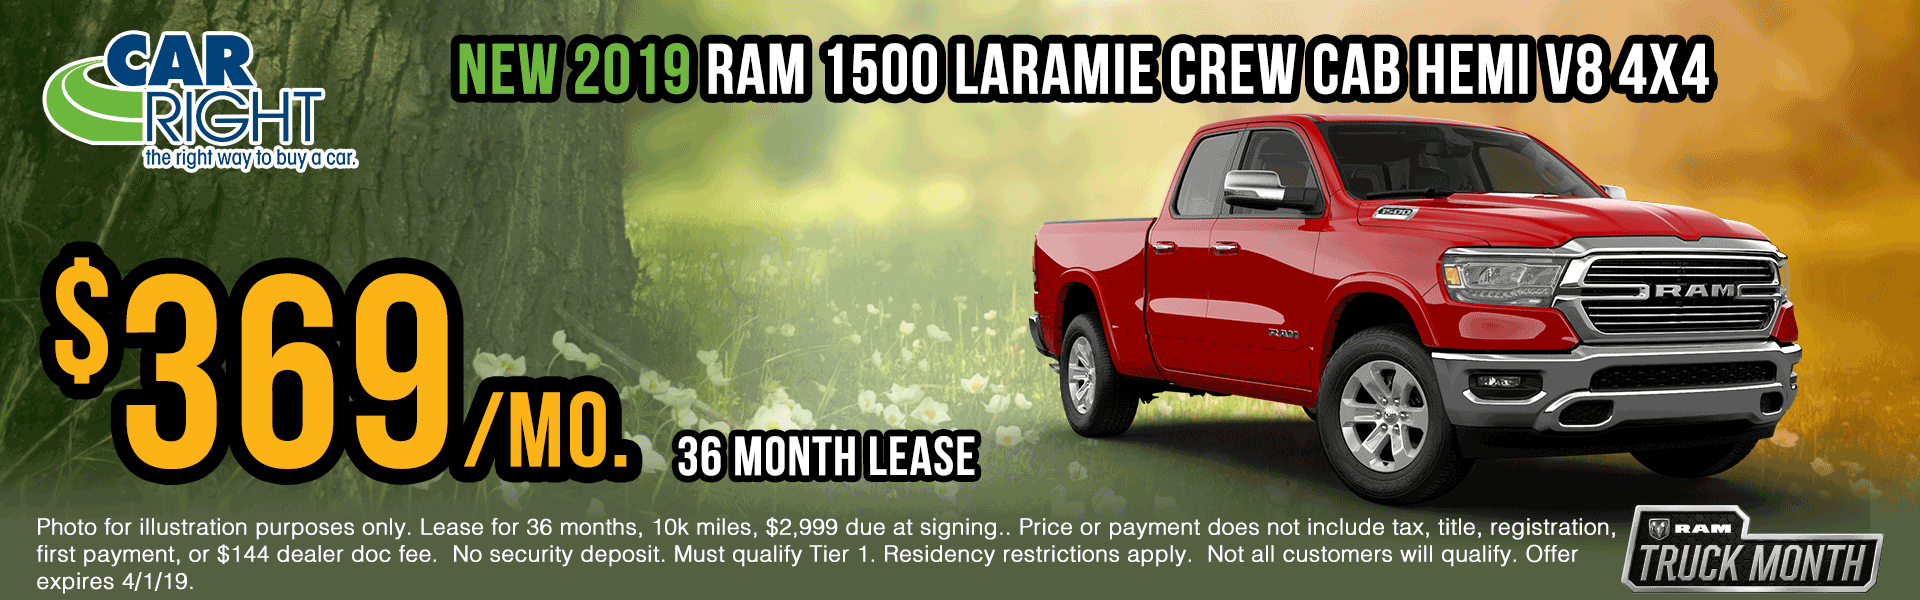 B3128-2019-ram-1500-laramie-crew-cab Spring sales event ram truck month jeep specials Chrysler specials ram specials dodge specials mopar specials new vehicle specials carright specials moon twp